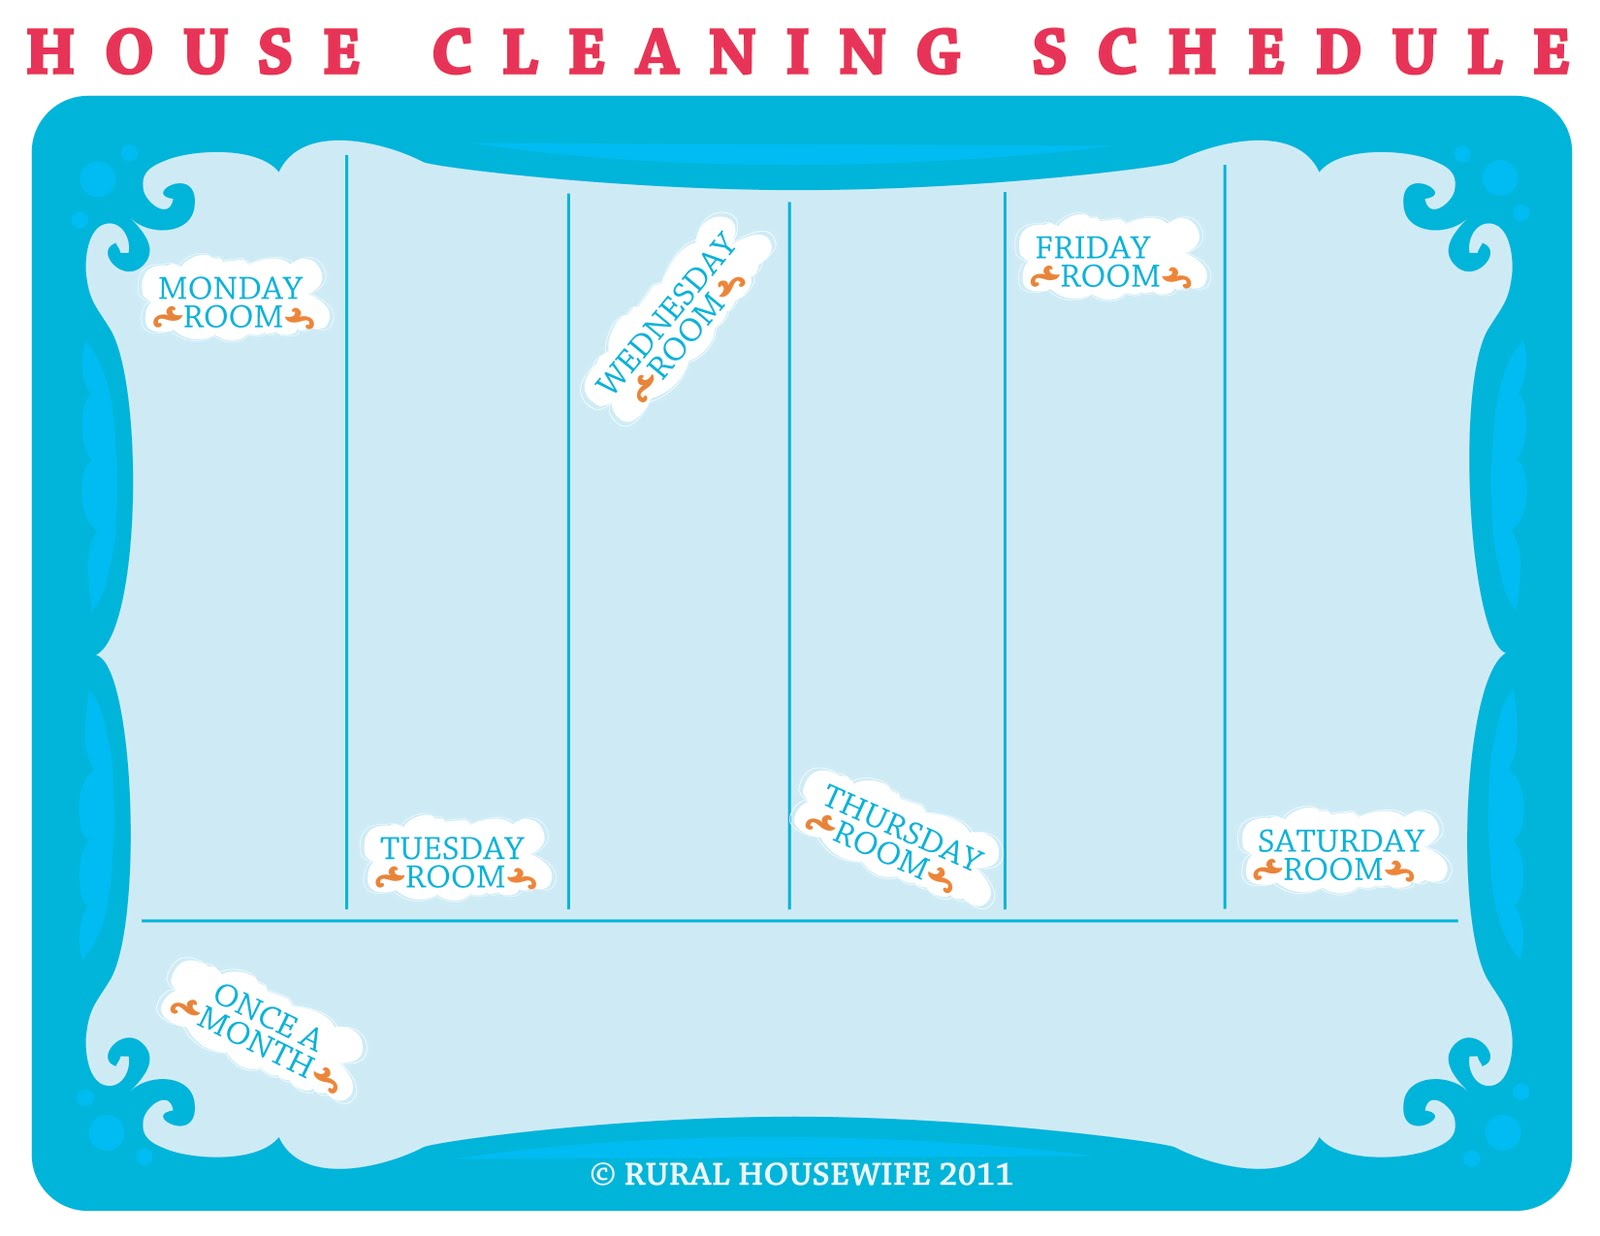 rural housewife cleaning schedule template. Black Bedroom Furniture Sets. Home Design Ideas